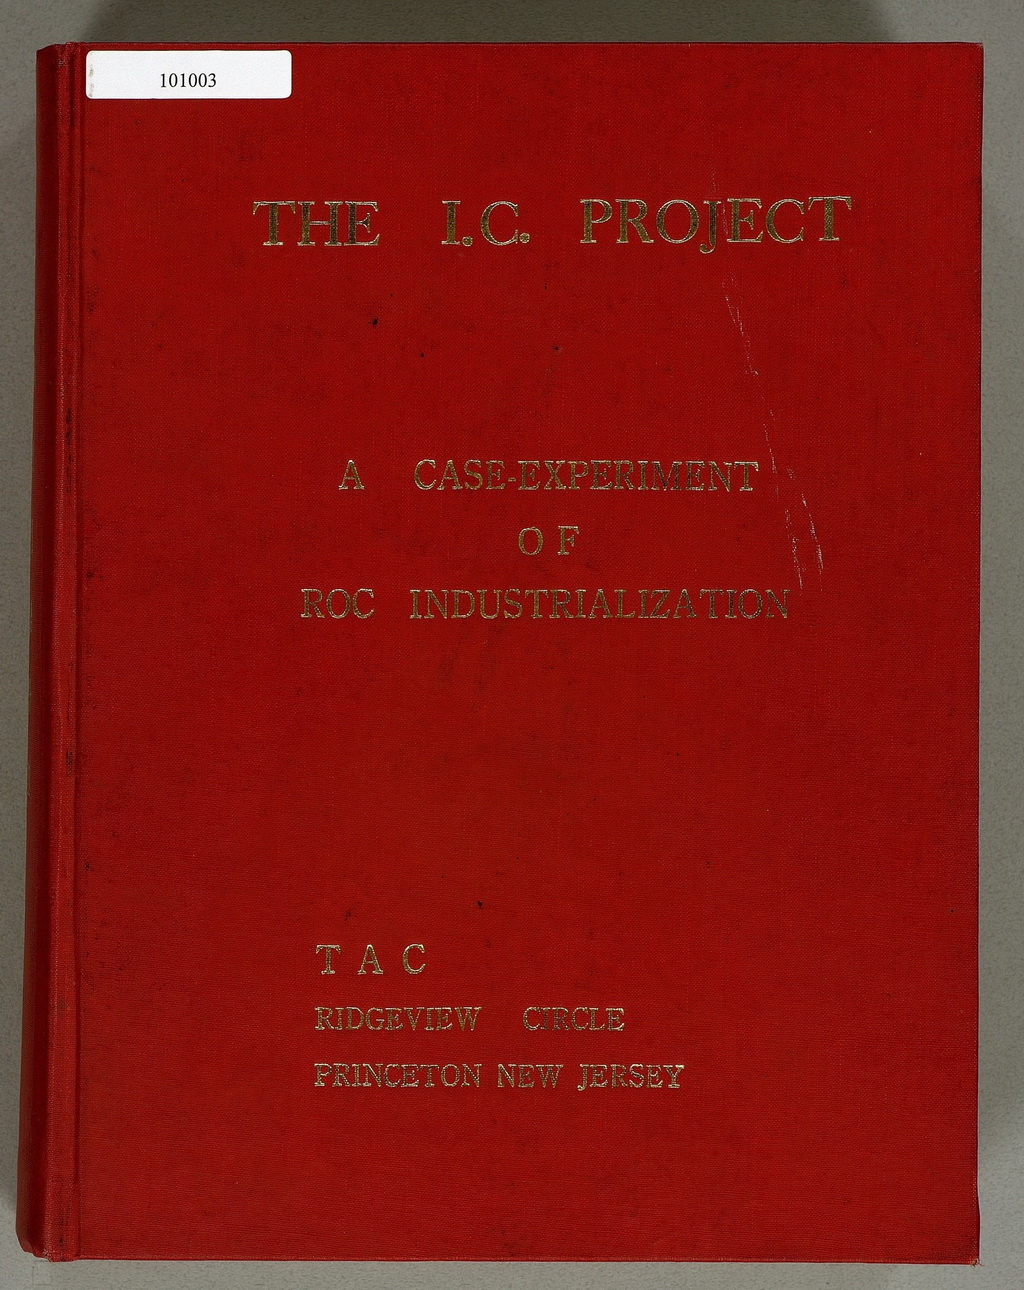 THE I.C. PROJECT: A CASE-EXPERIMENT OF ROC INDUSTRIALIZATION